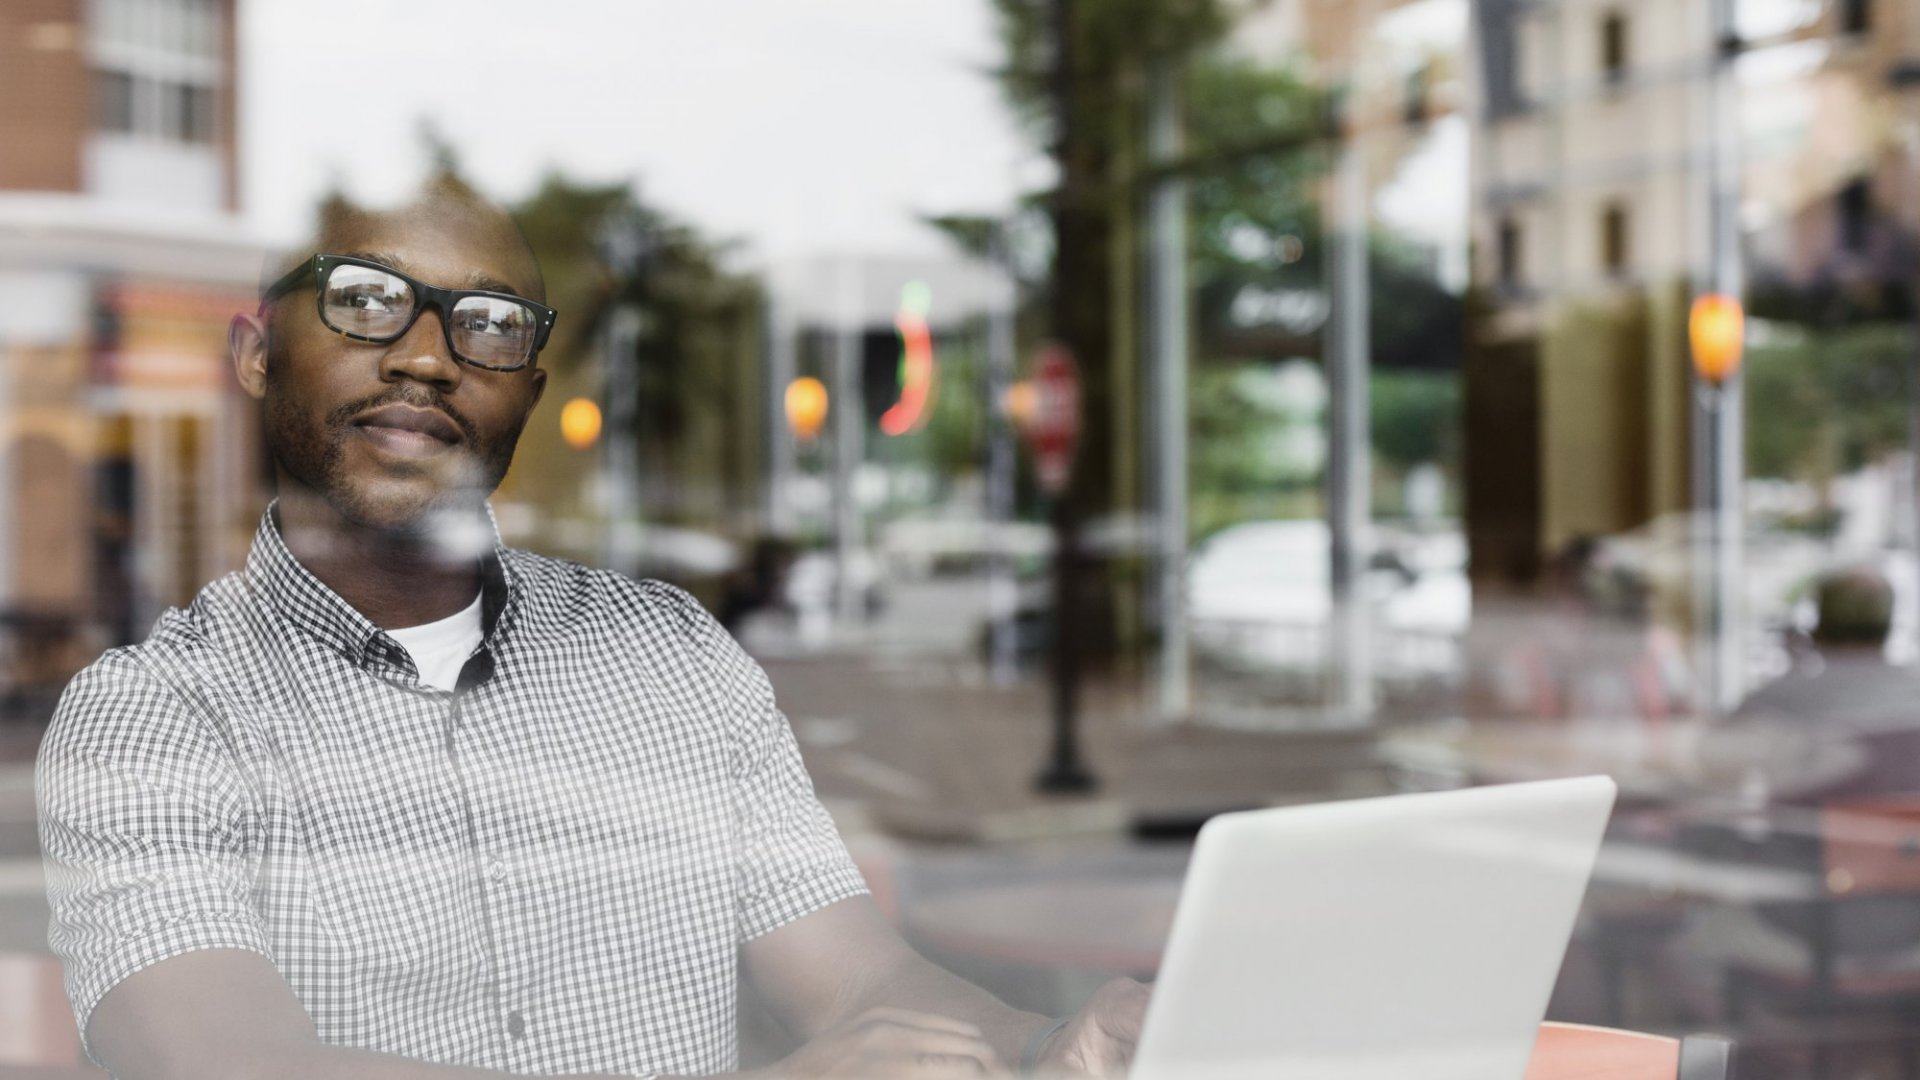 6 Tips for Keeping a Strong Bond With Your Virtual Employees